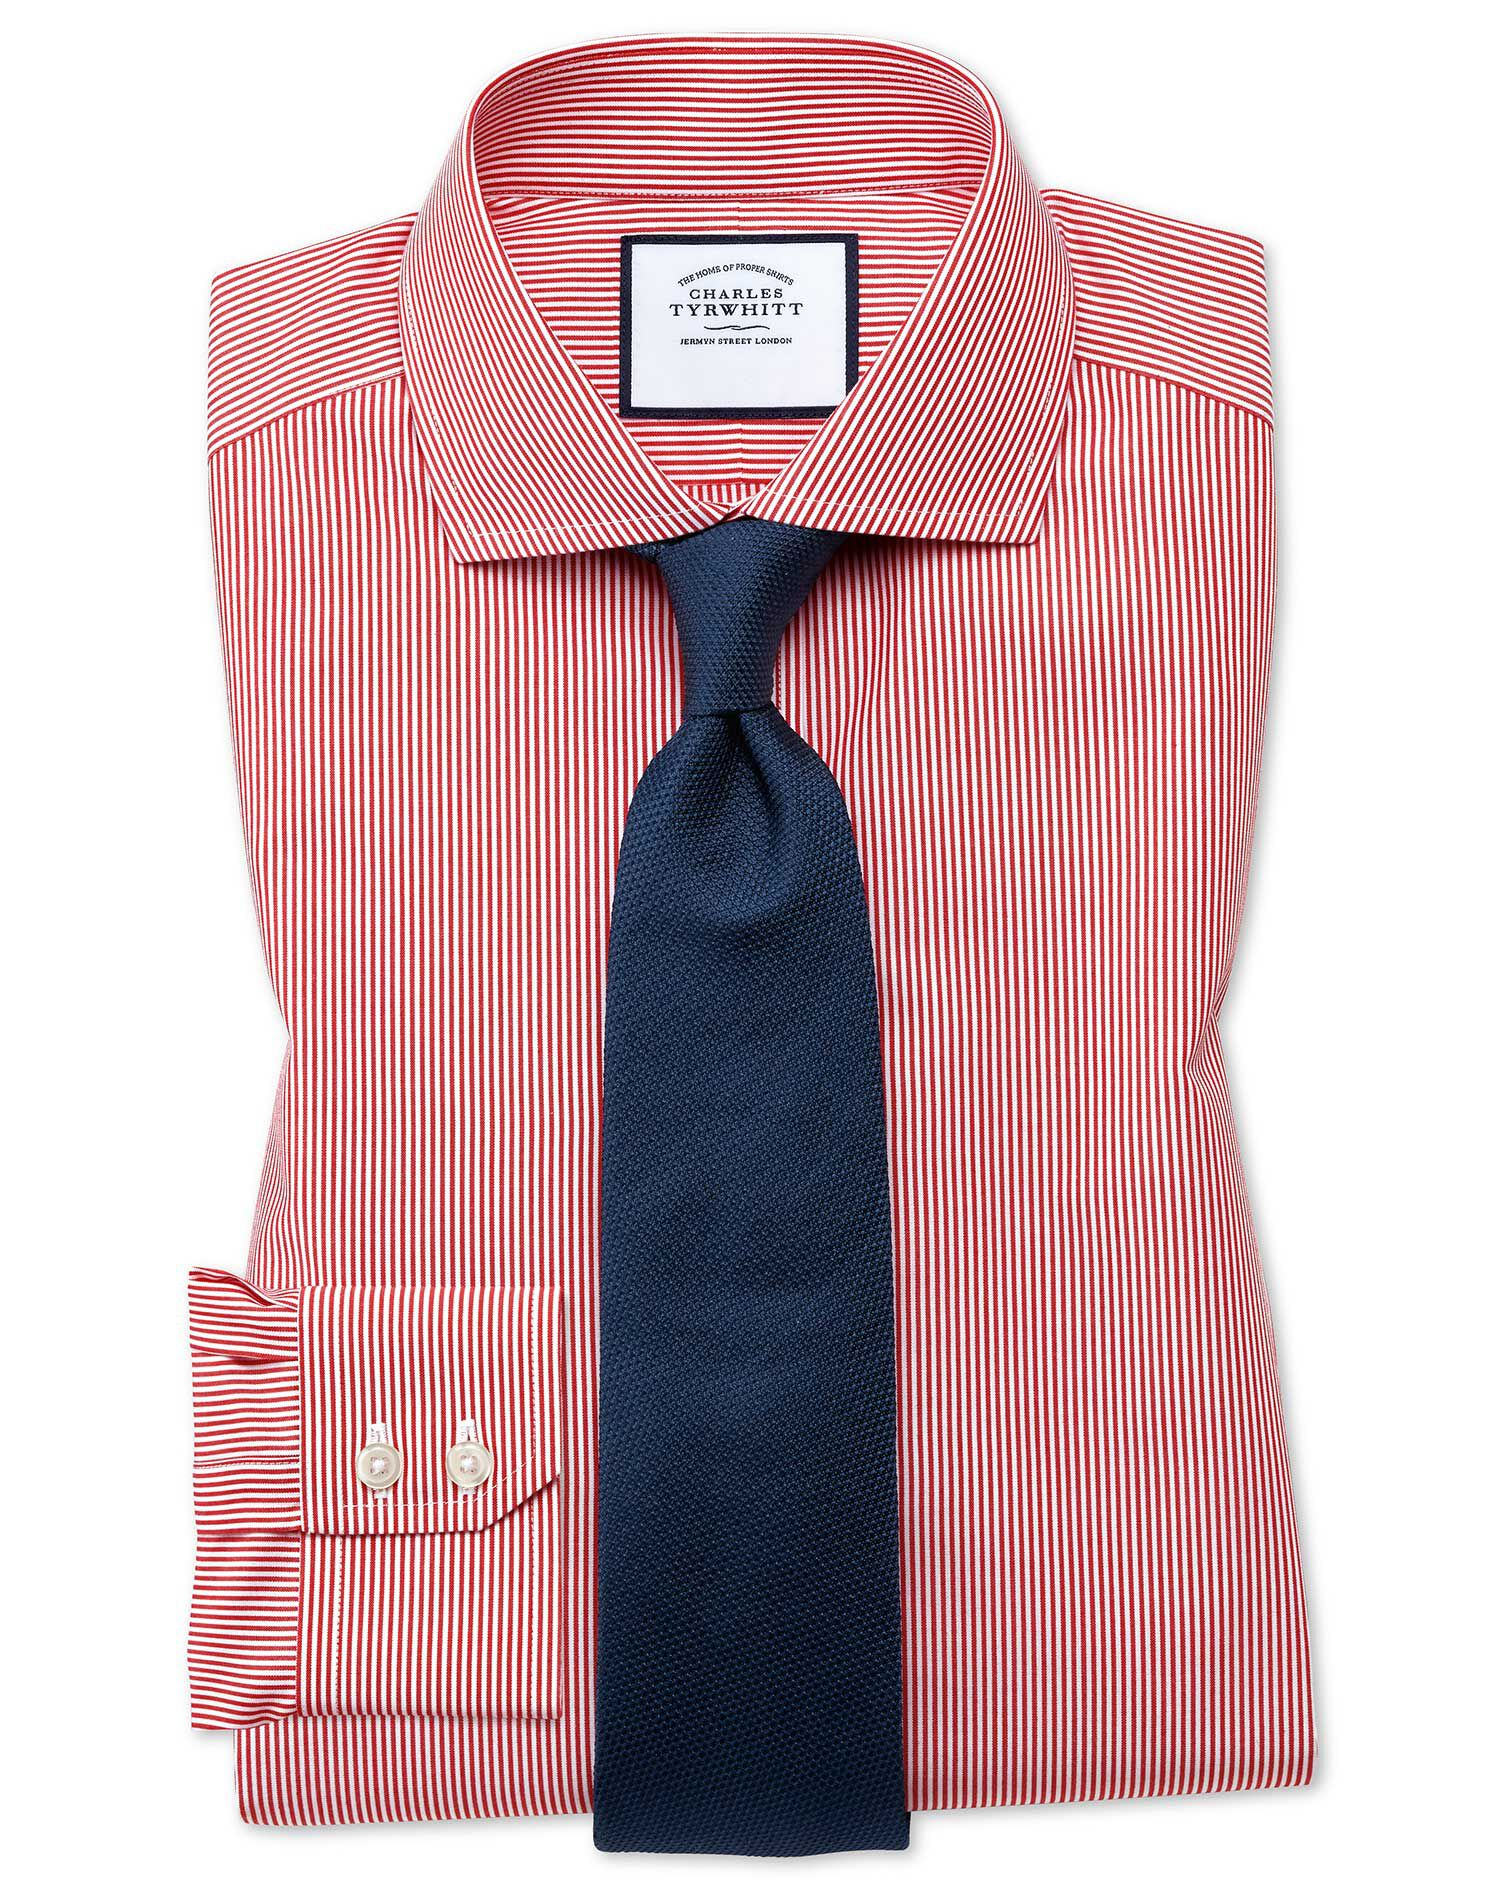 Extra Slim Fit Cutaway Collar Non-Iron Bengal Stripe Red Cotton Formal Shirt Double Cuff Size 15.5/3